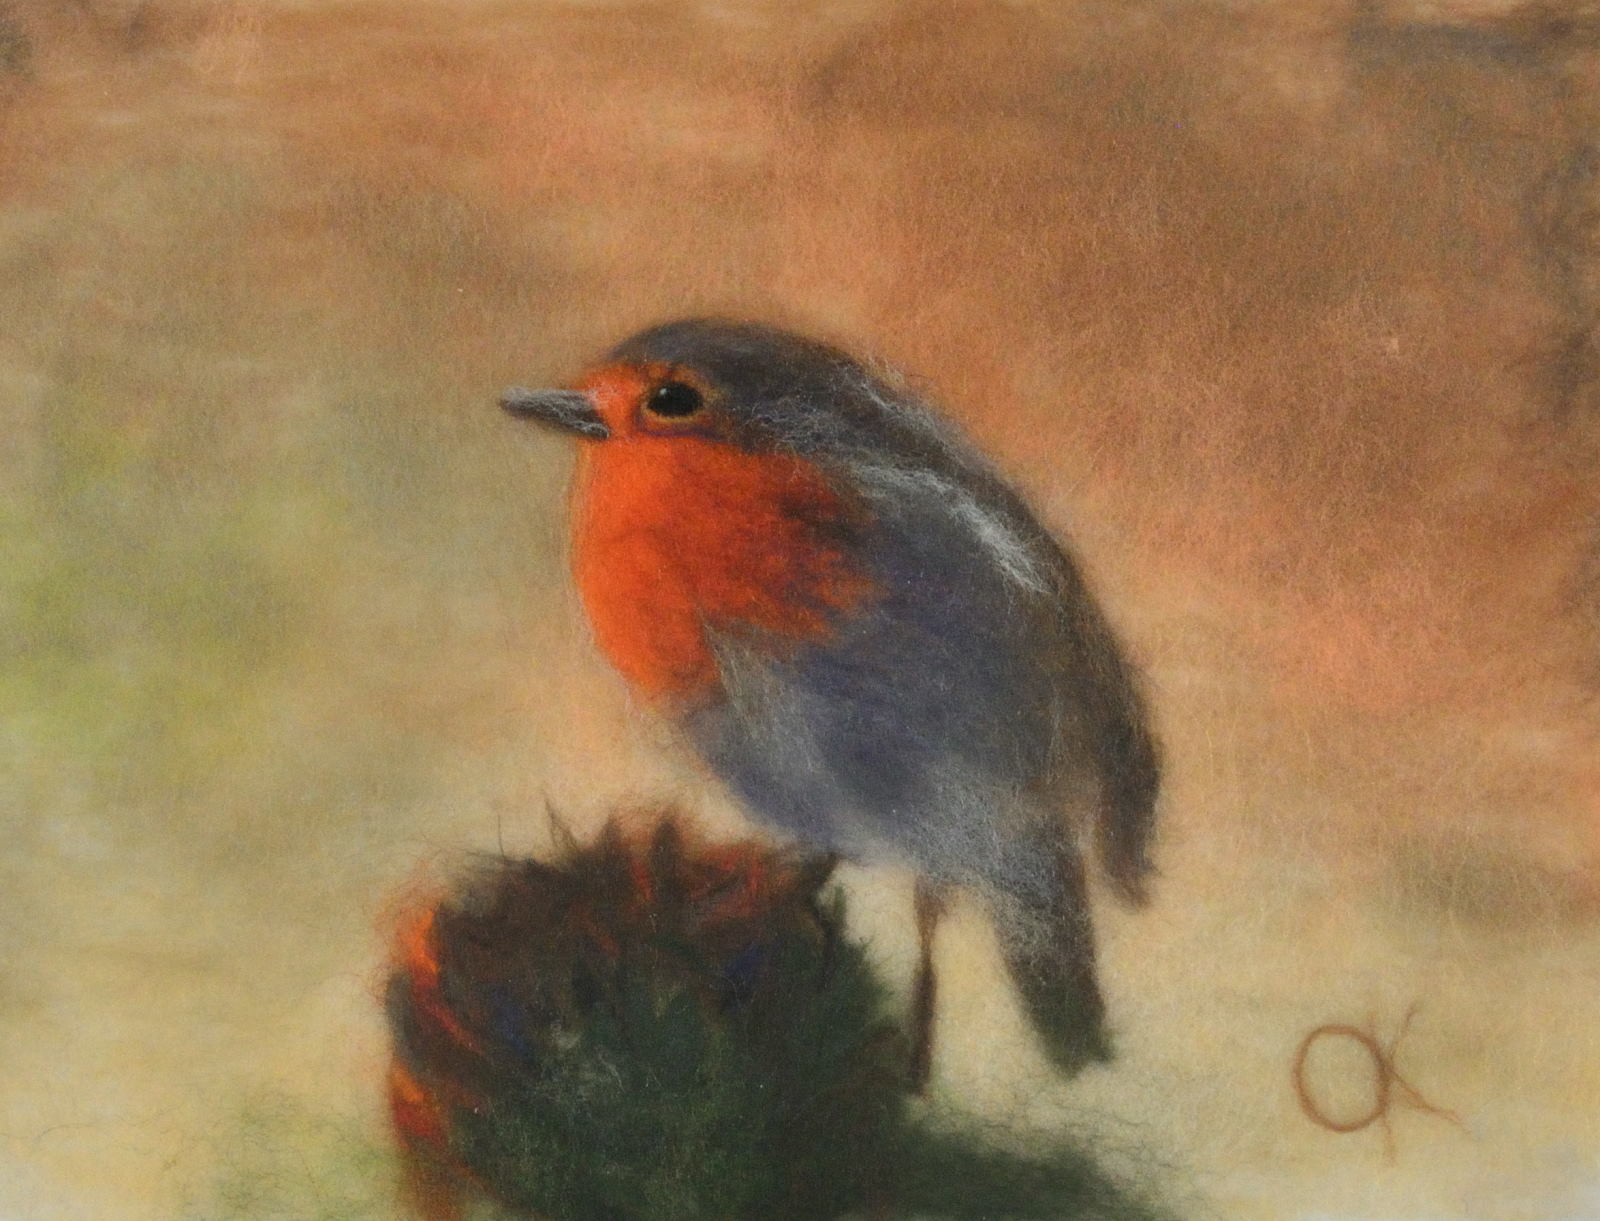 Redbreast robin. Wool Art Gallery. Picture made of merino wool